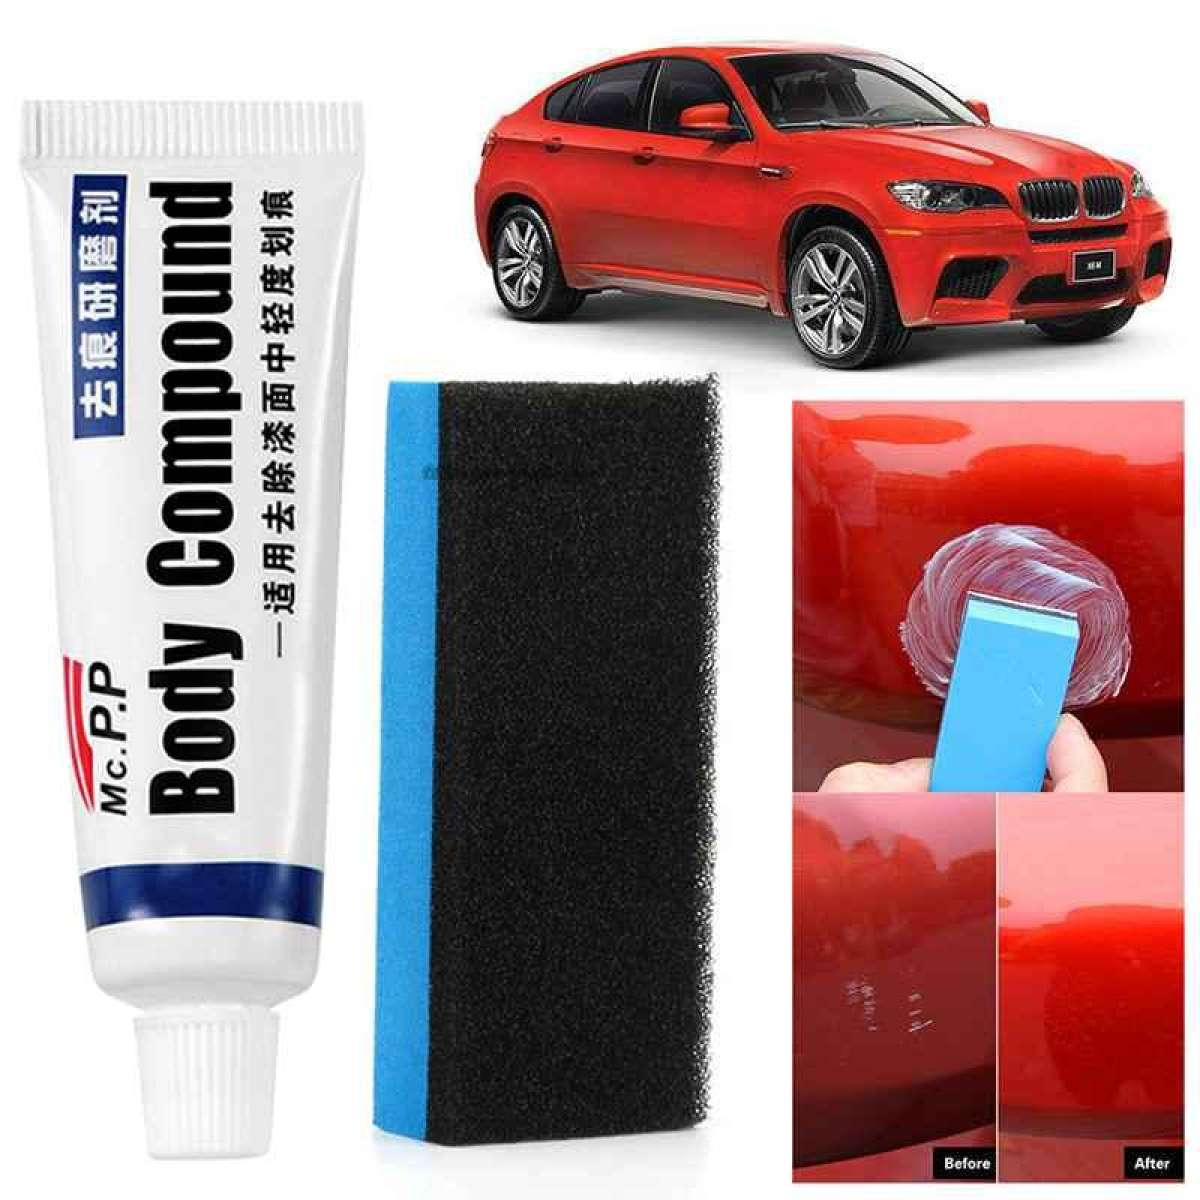 Car Scratch Repair Kits Auto Body Compound Polishing Grinding Paste Paint Care Set Practical Auto Accessories Paint Scratches Remover